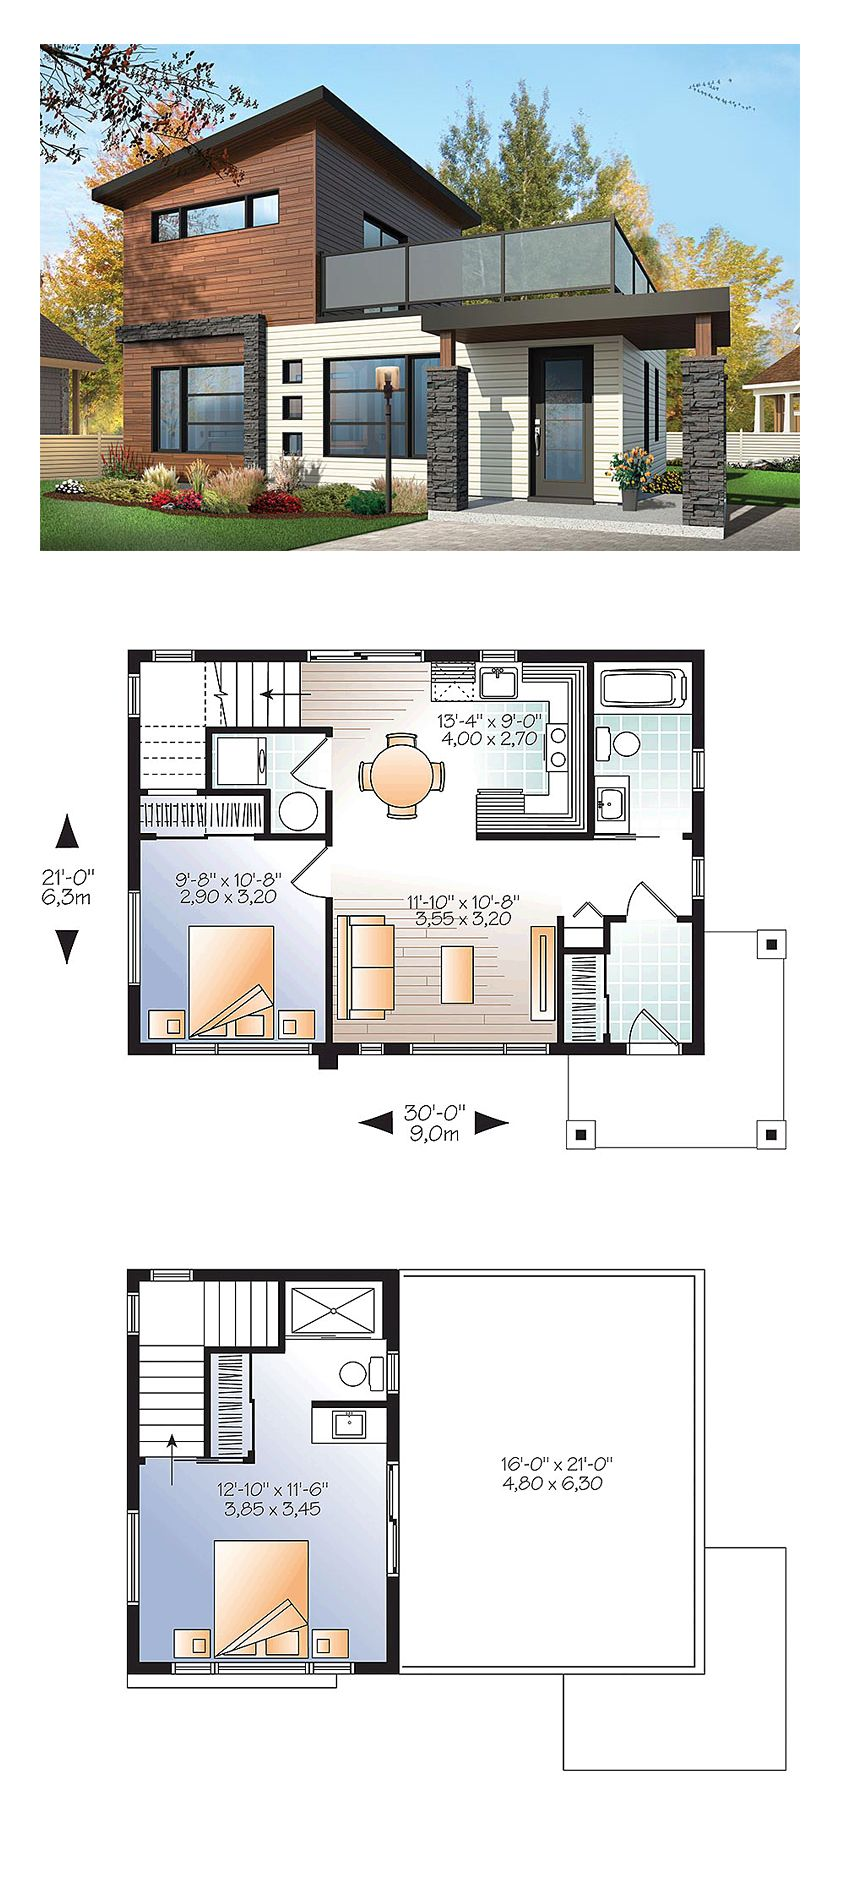 Modern house plan 76461 total living area 924 sq ft for Modern family house floor plan